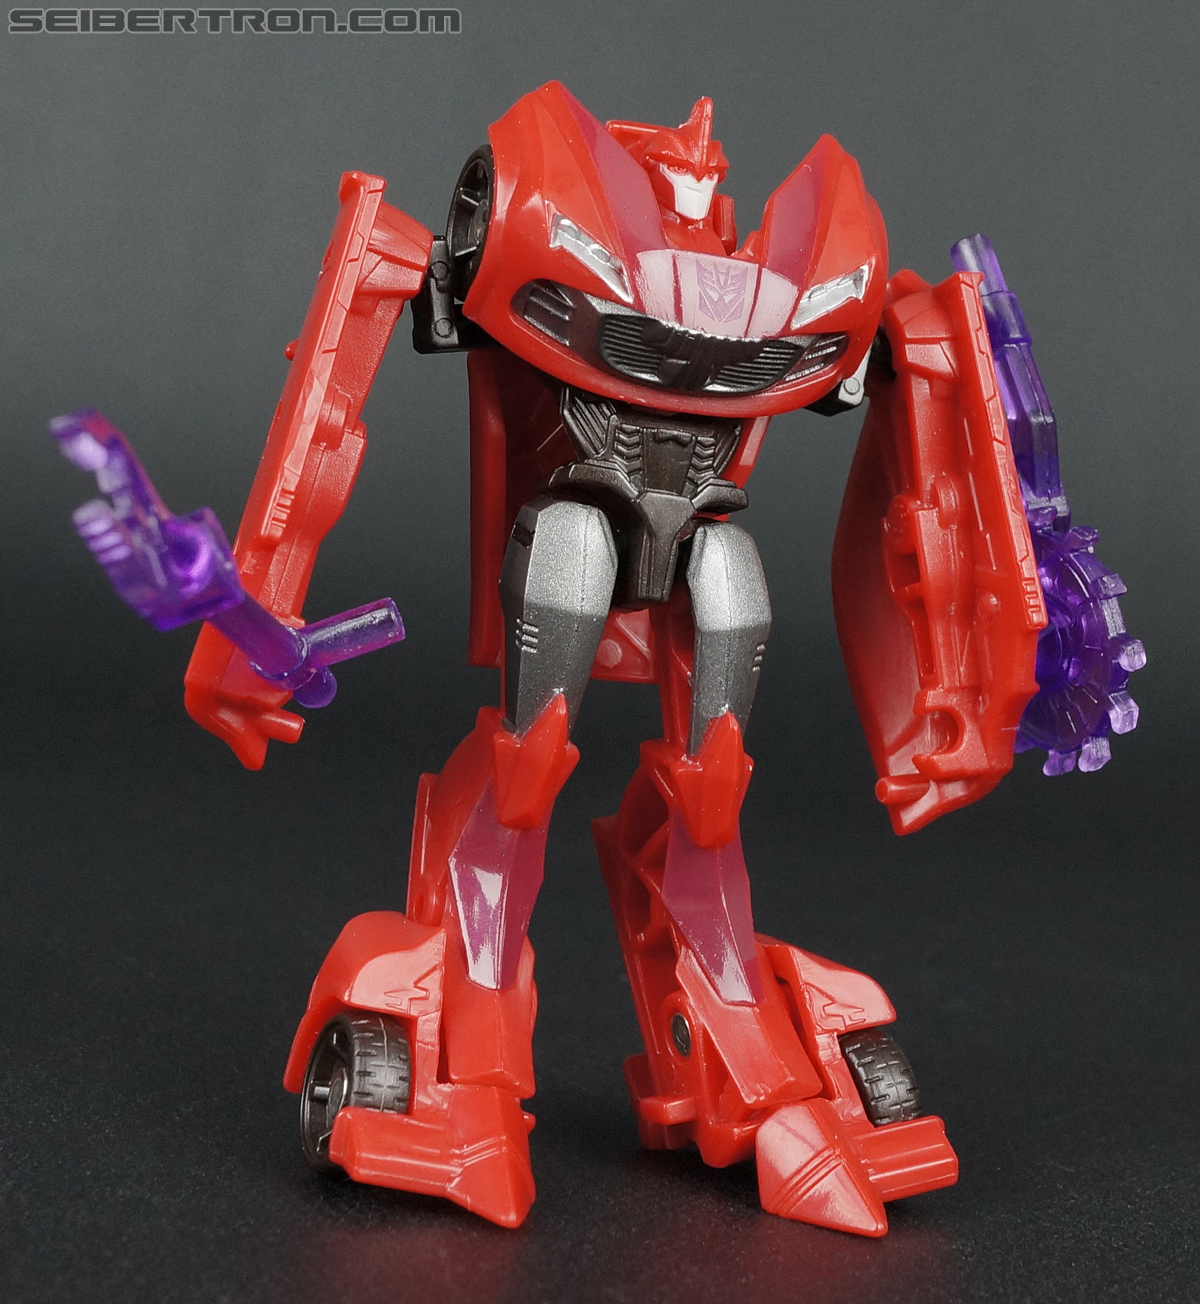 Transformers Prime: Cyberverse Knock Out (Image #115 of 146)